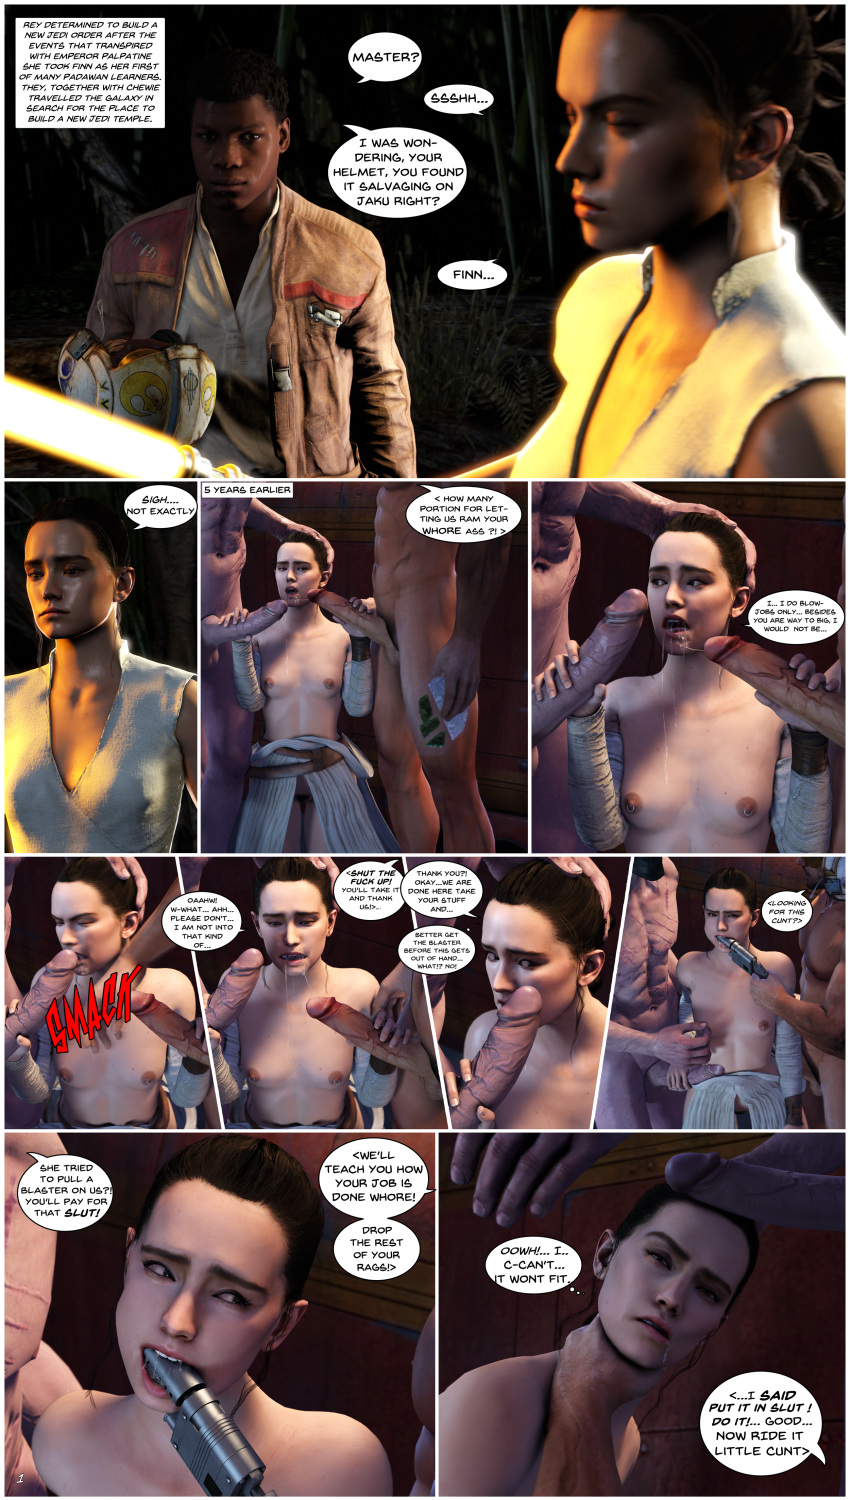 nude wars star female characters If it exists there's p website